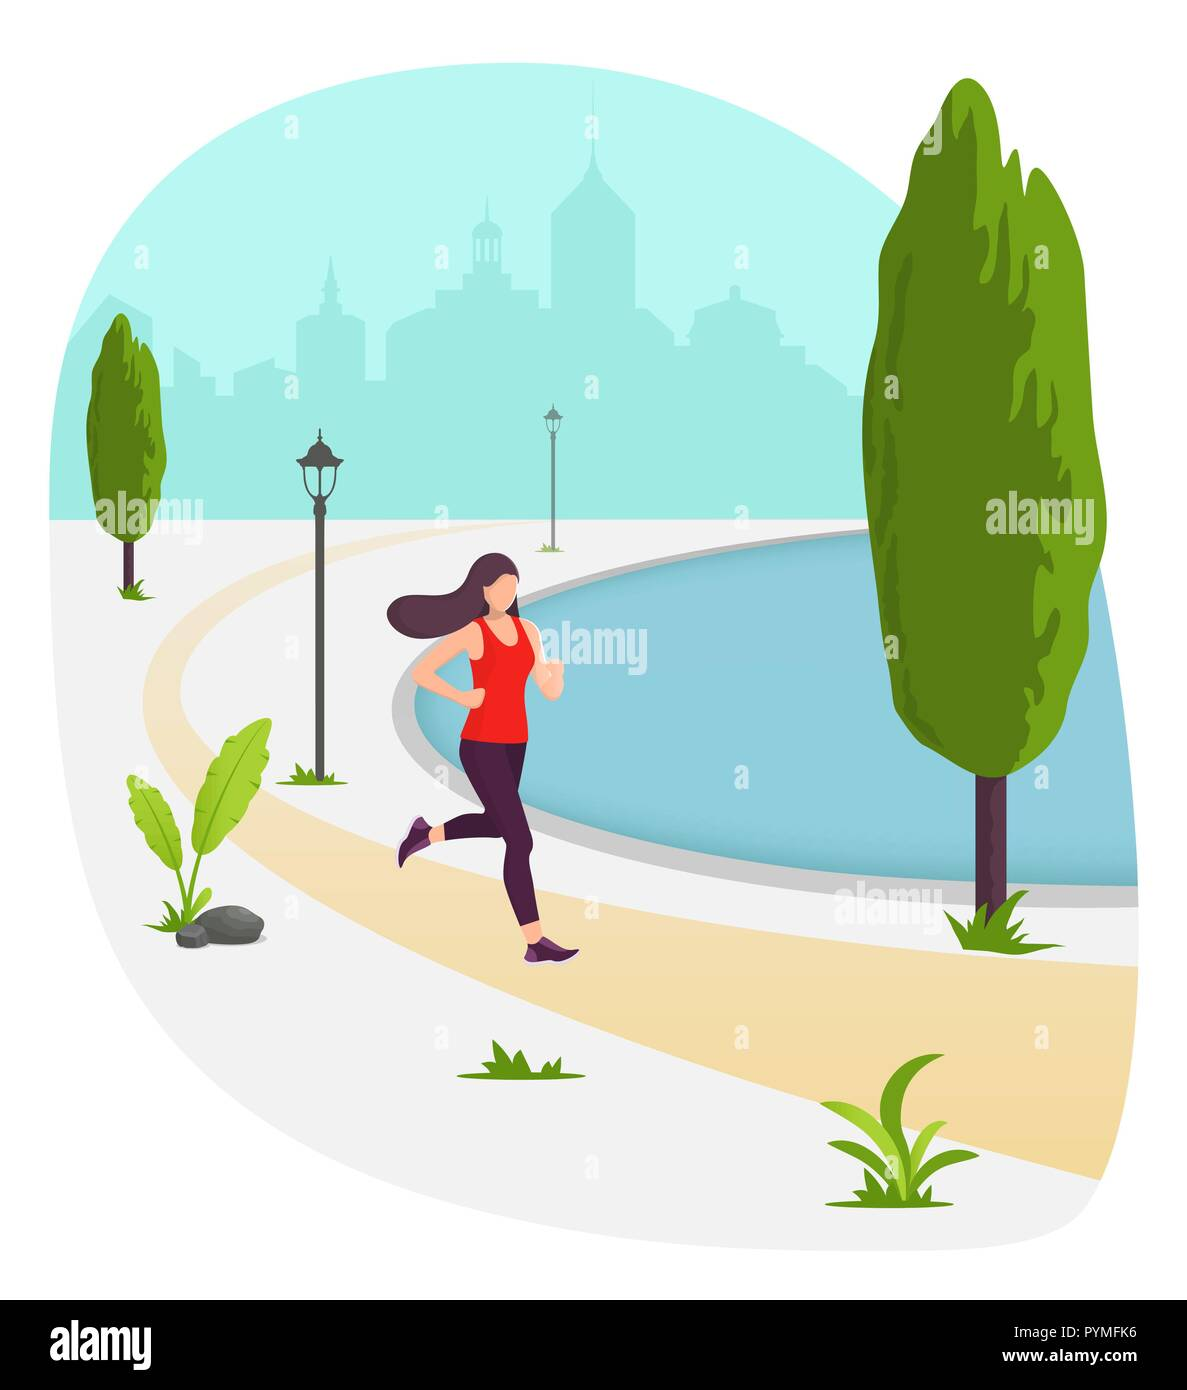 Young beautiful woman running in city park. Girl jogging. Park, plants, trees and street lamp. Vector illustration in modern flat style for banner, we - Stock Image